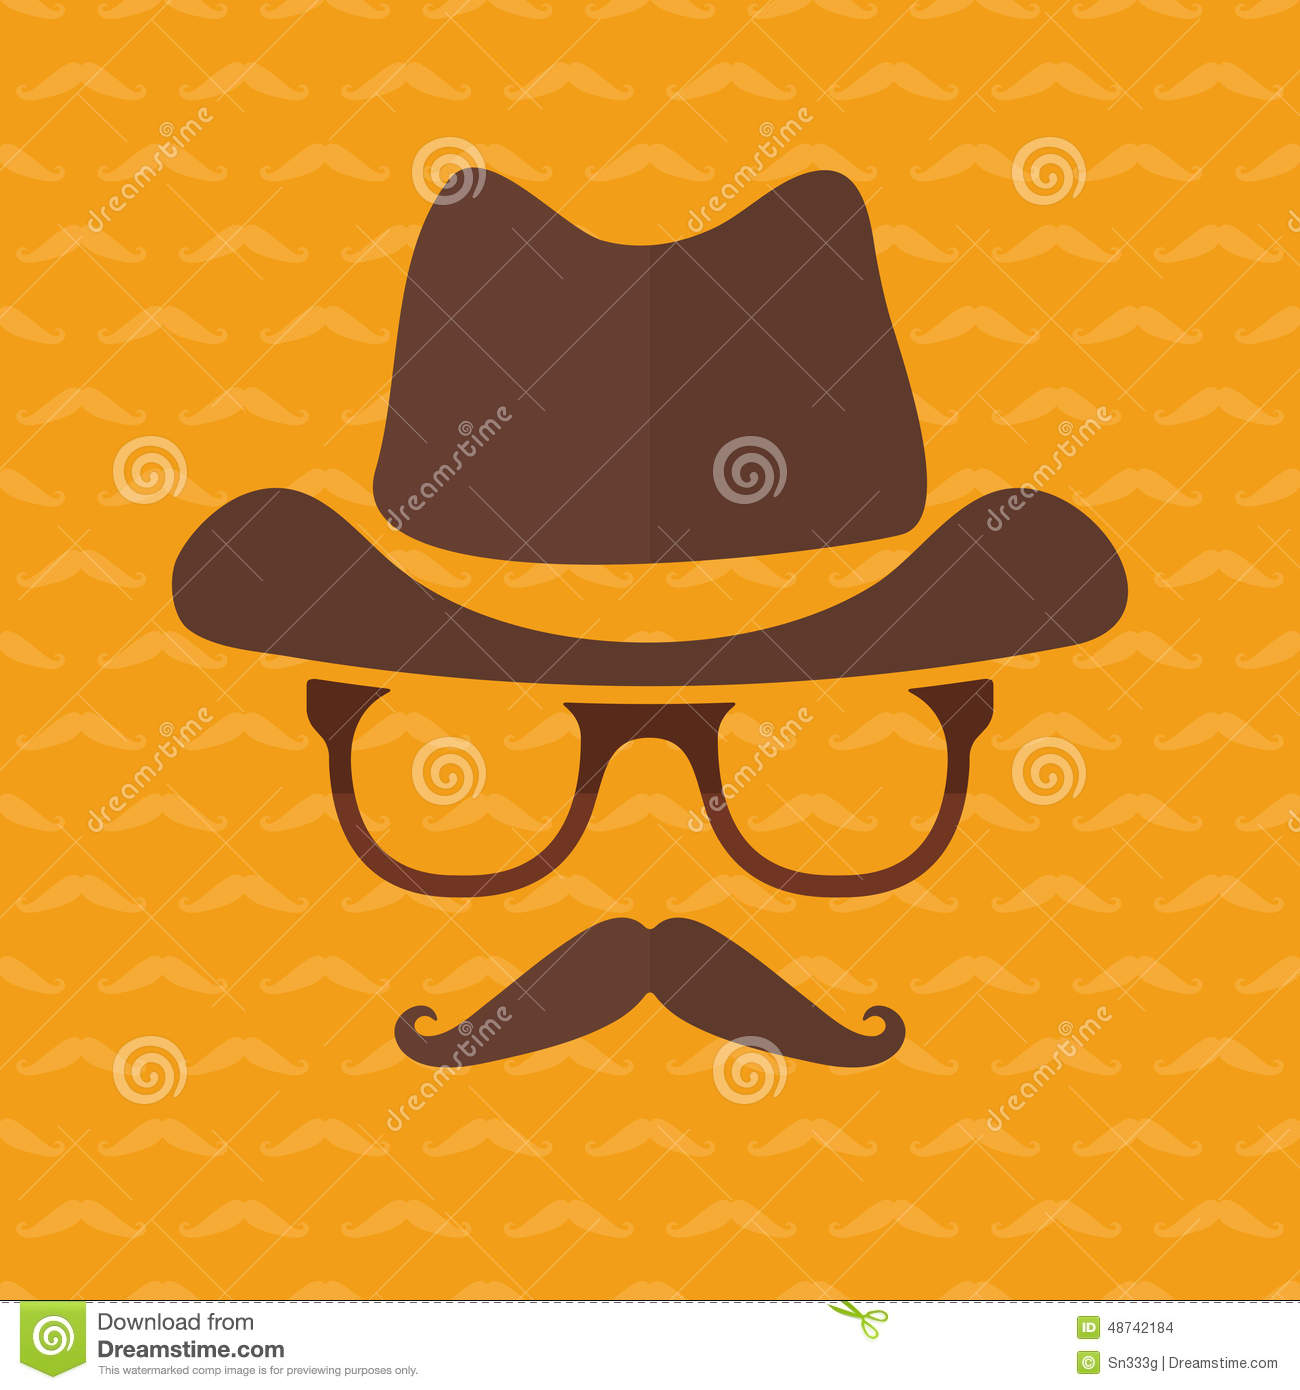 Hipster Face Silhouette In Flat Style Stock Vector